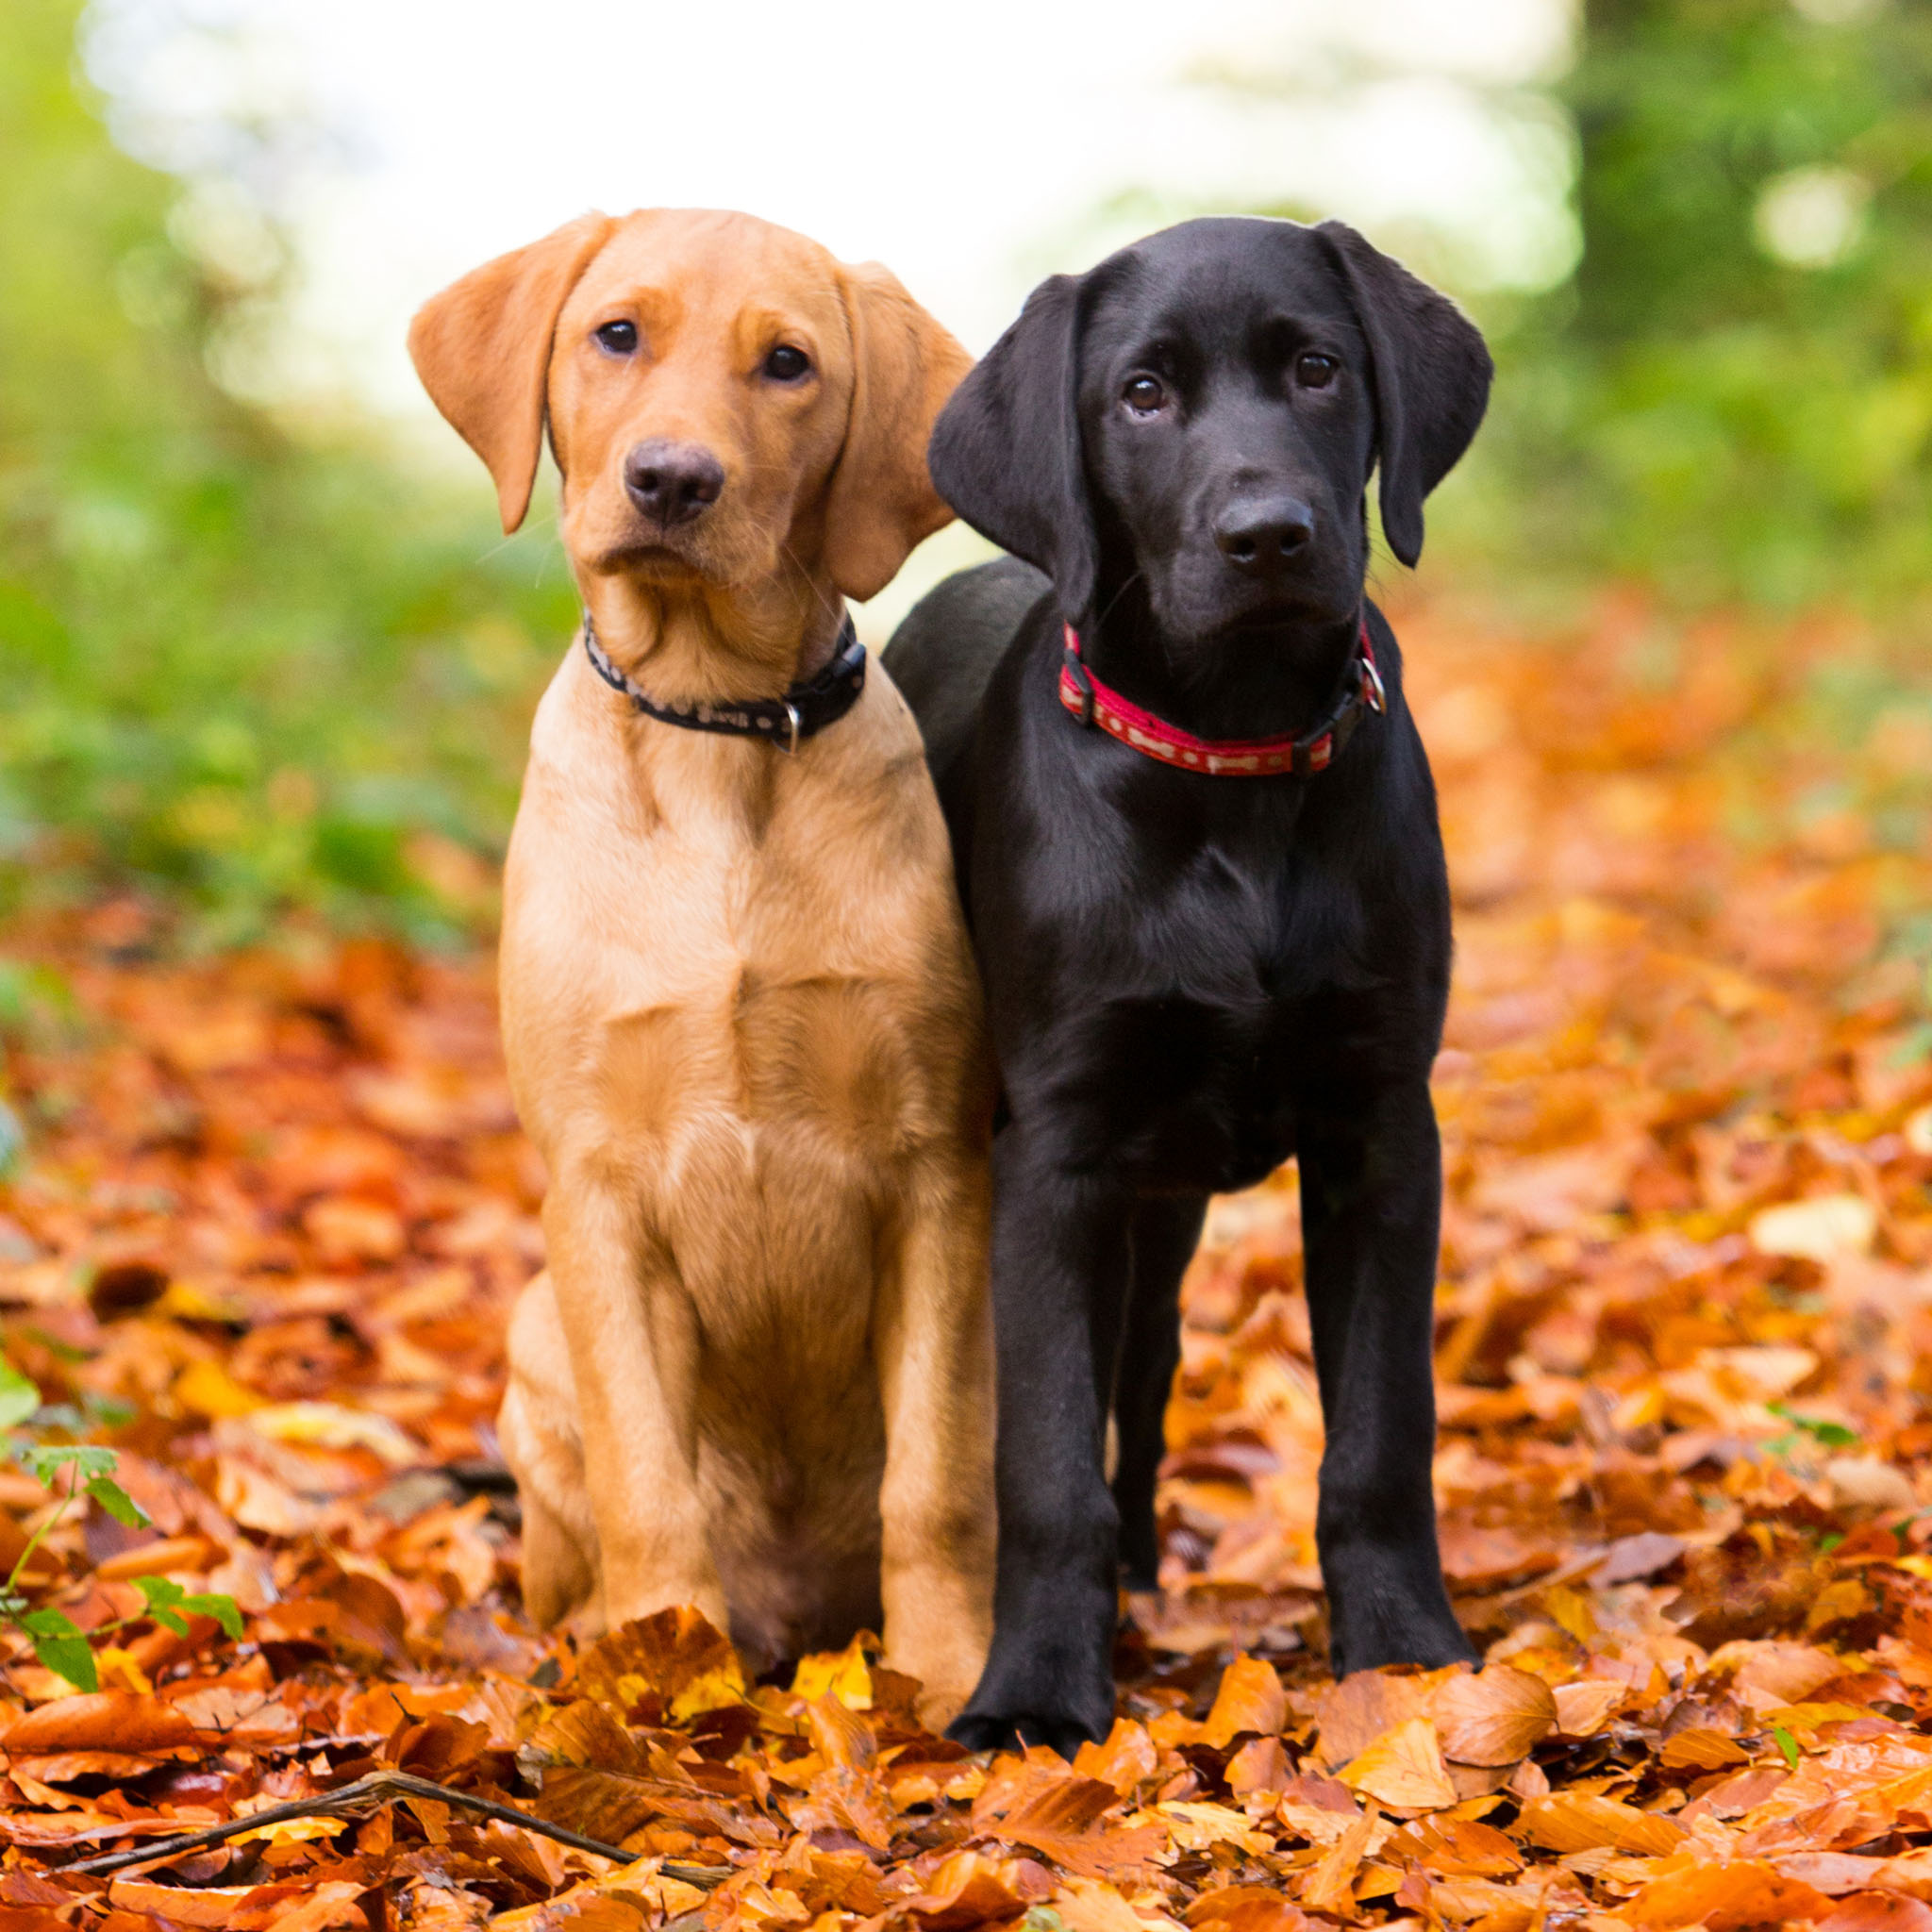 Pet portrait photography of a fox red Labrador puppy and a black Labrador puppy in autumn leaves in Holywell, North Wales